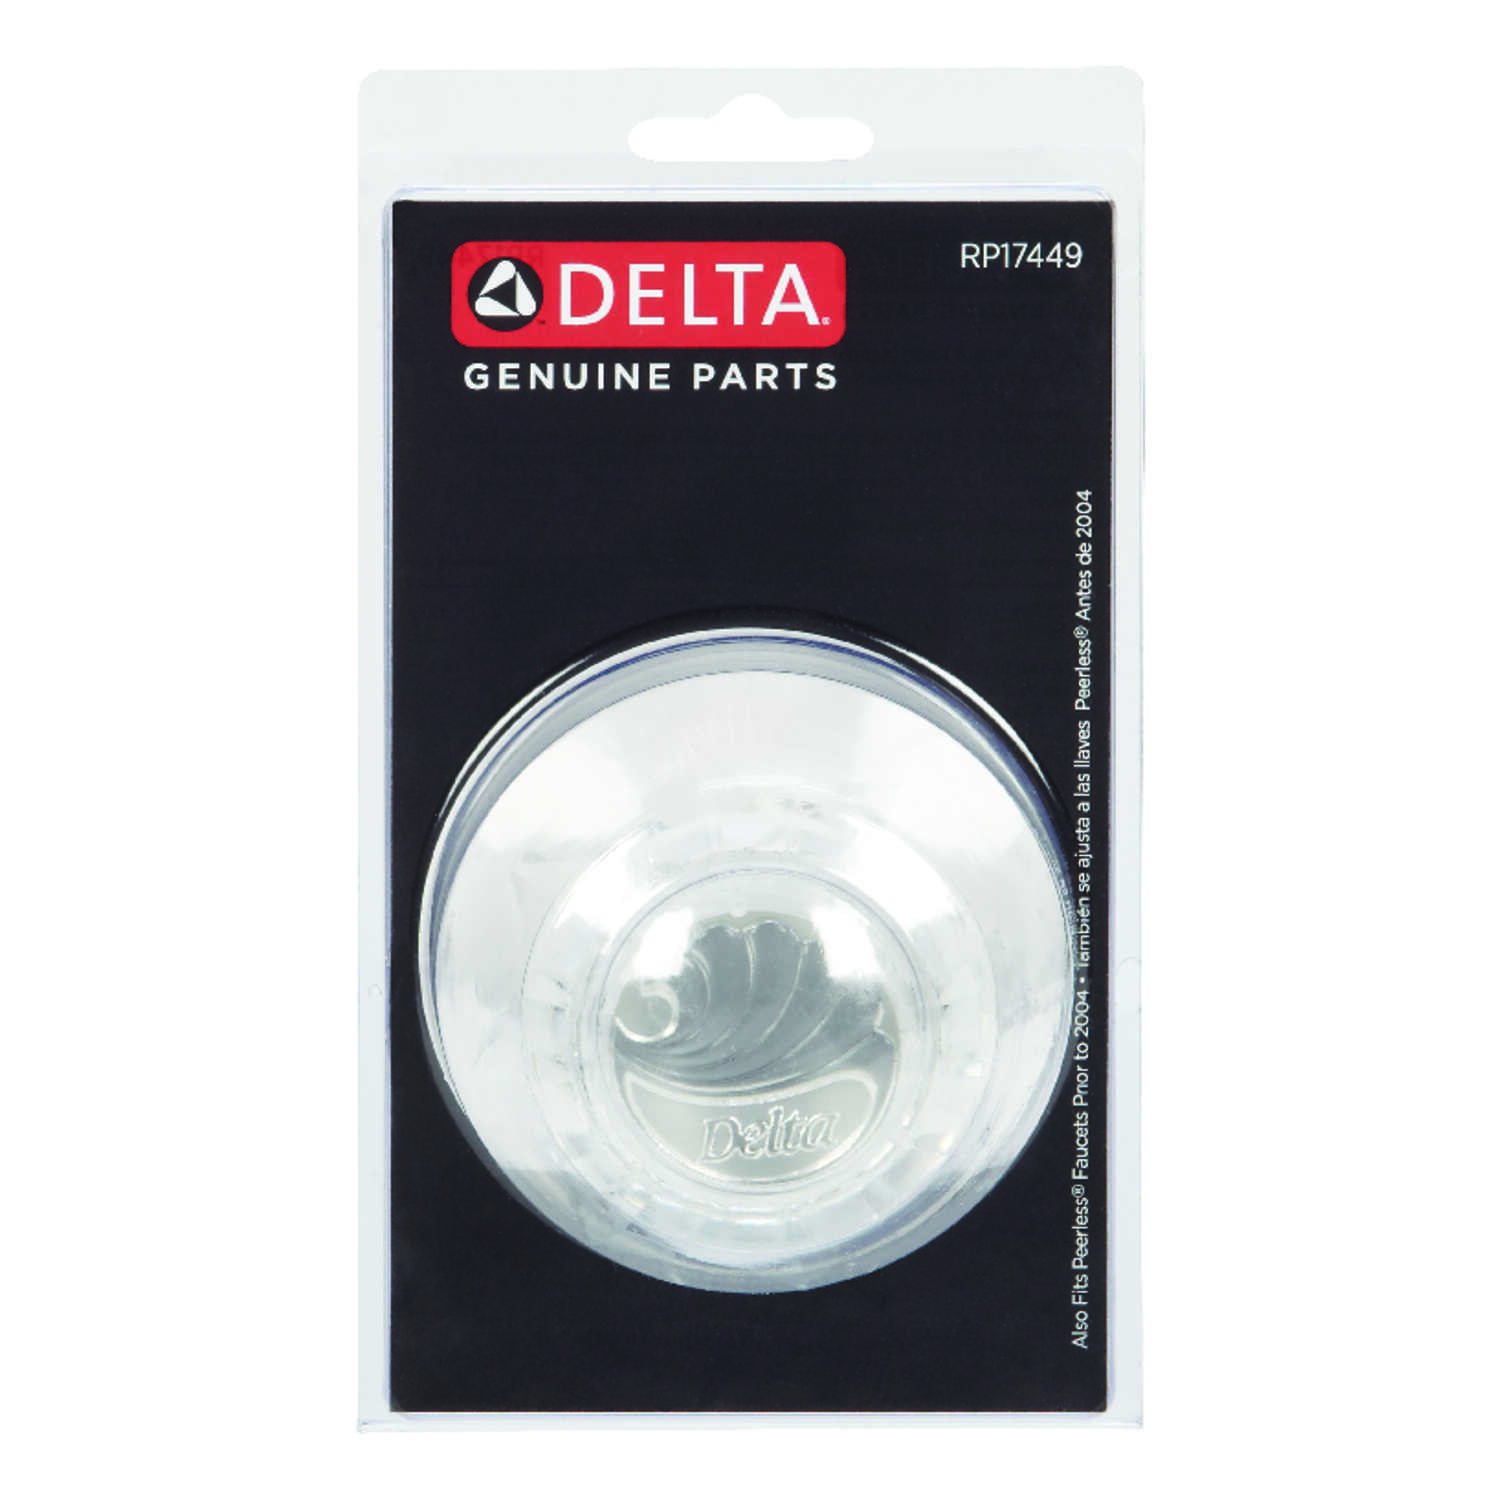 Delta  Knob  Clear  Acrylic  Single  Faucet Handles  For Delta and Peerless Faucets